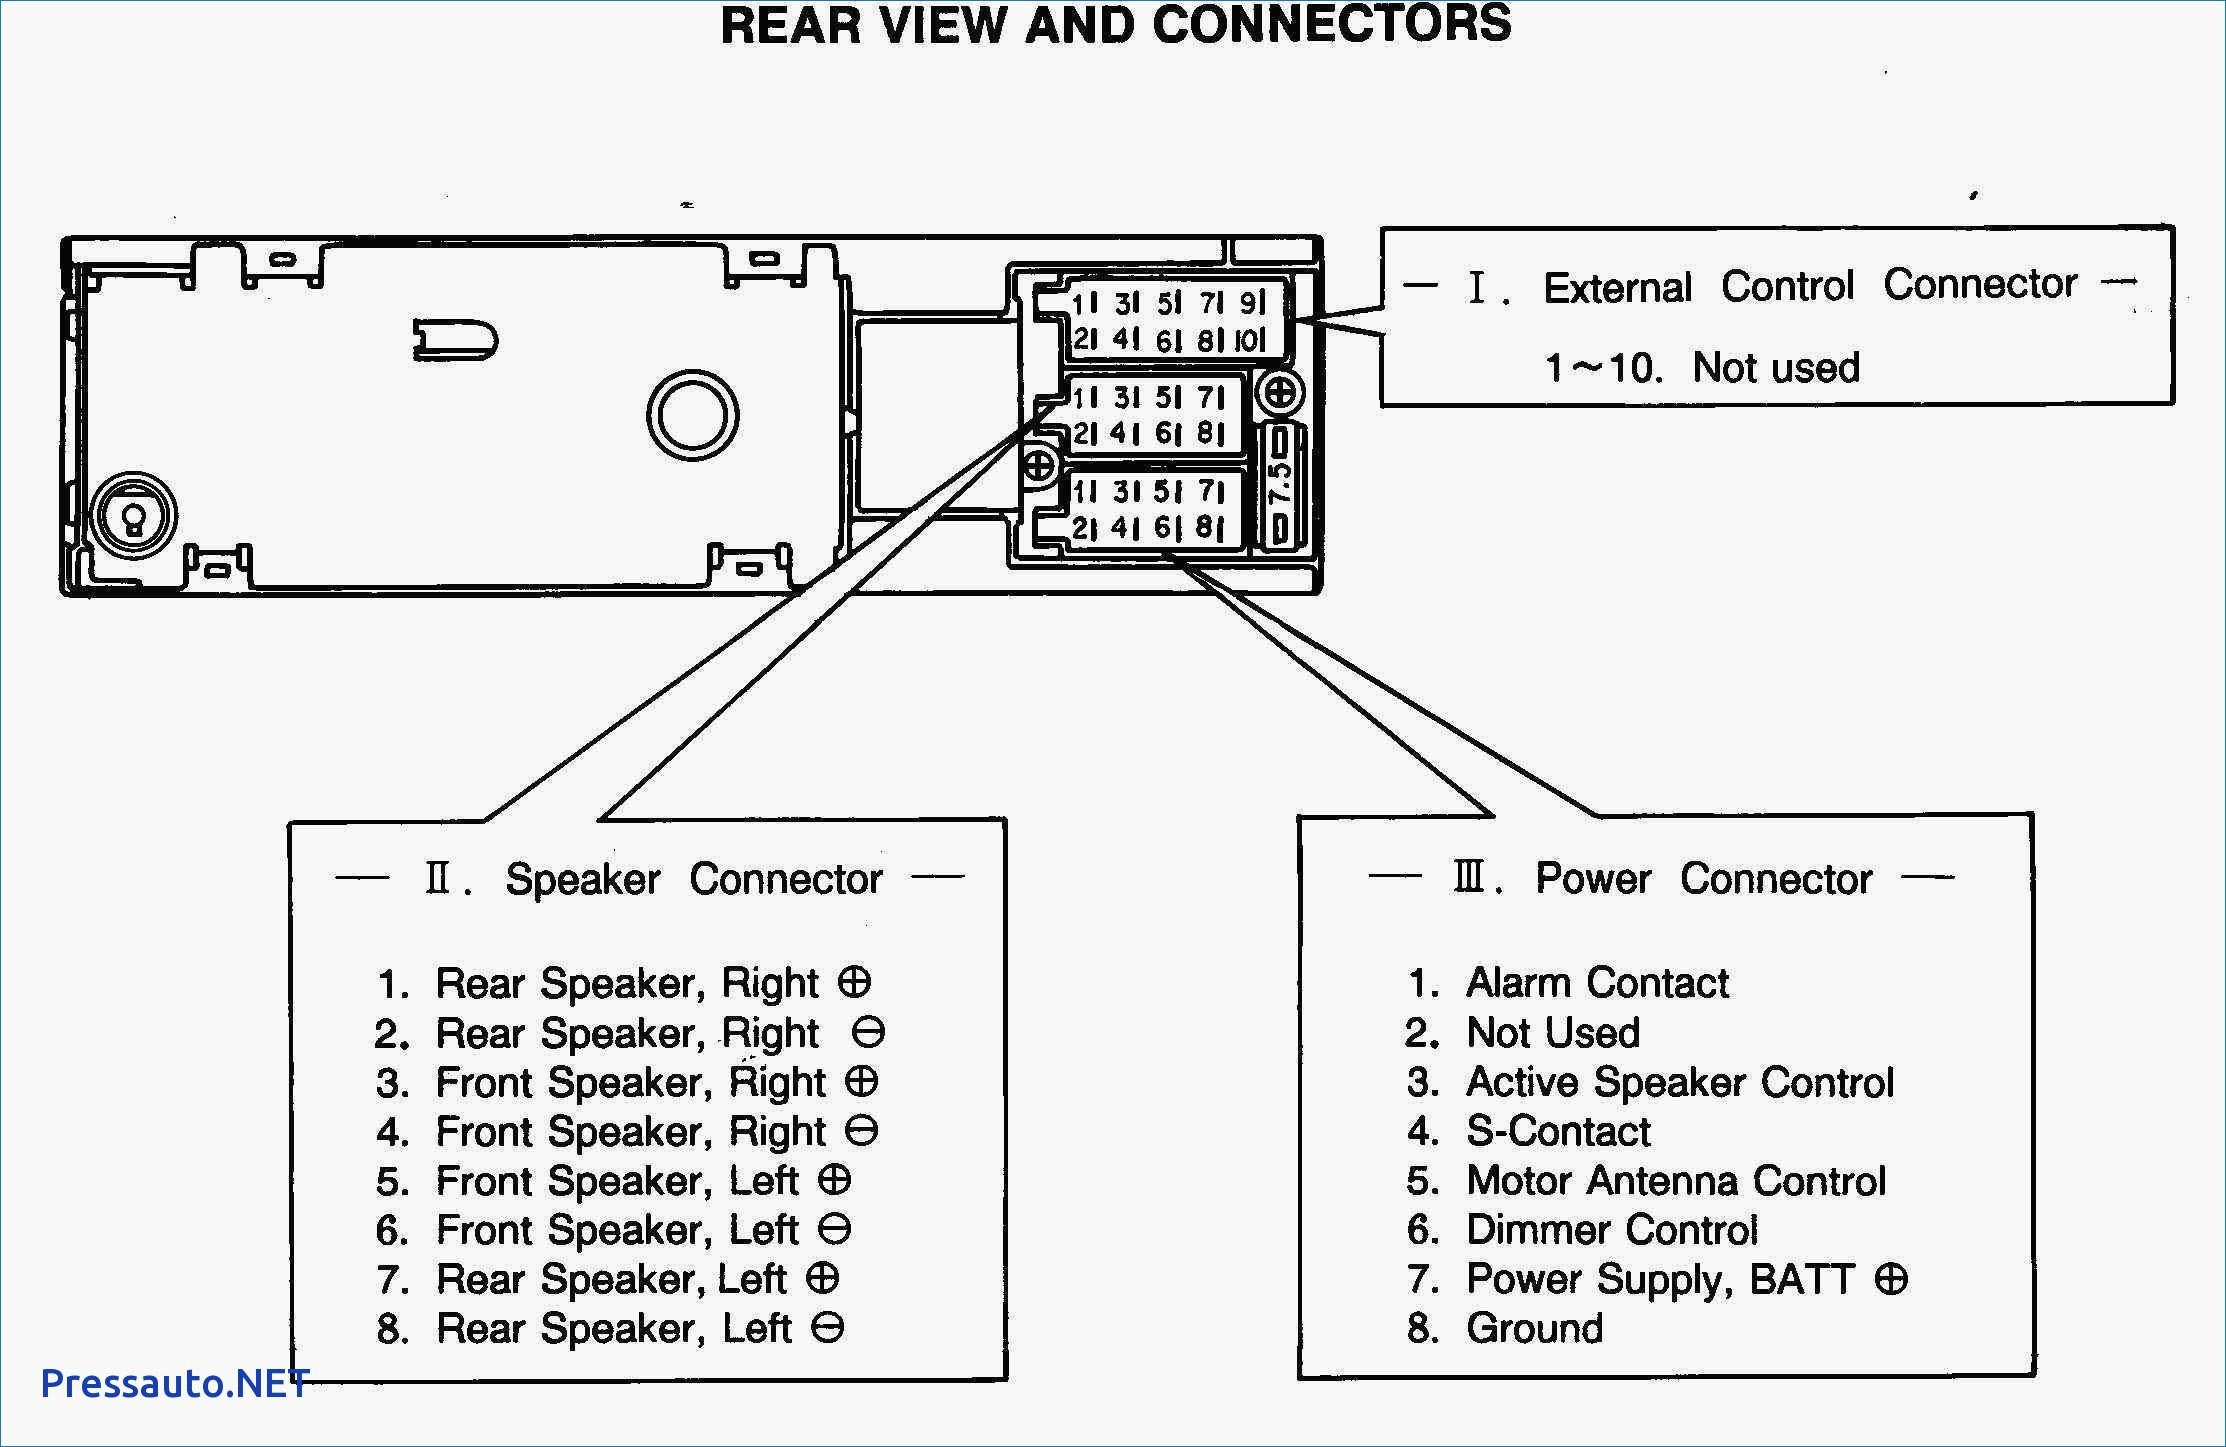 2000 Vw Jetta Stereo Wiring Diagram Beautiful aftermarket Radio Wiring Diagram Diagram